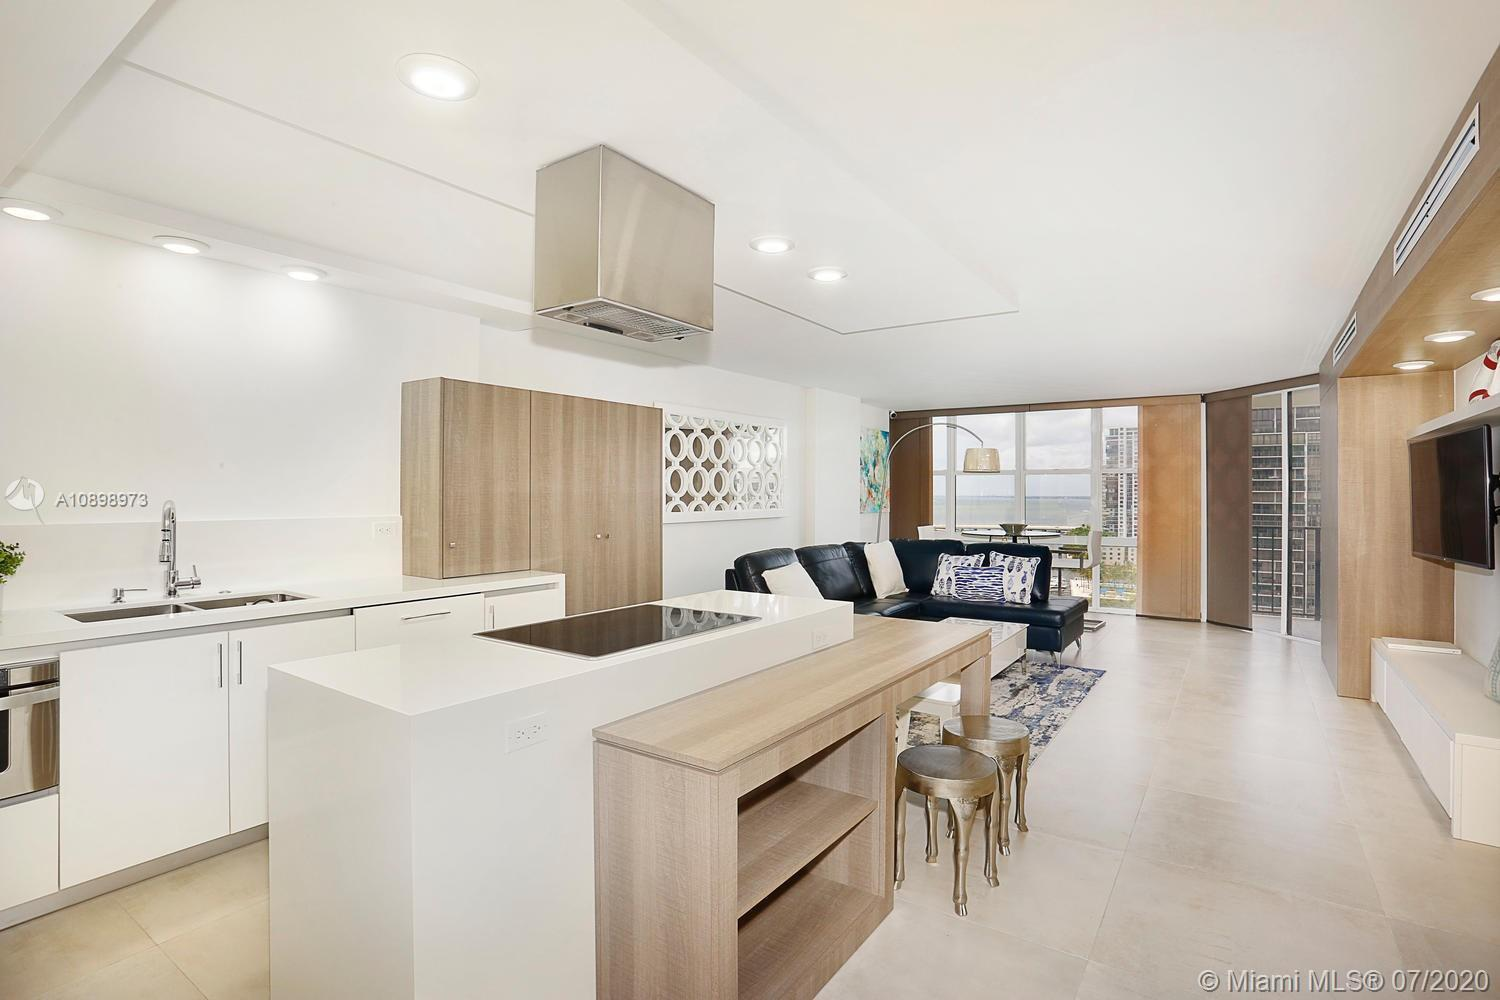 Beautifully renovated water view unit with new ceilings, lighting and floors was designed to welcome